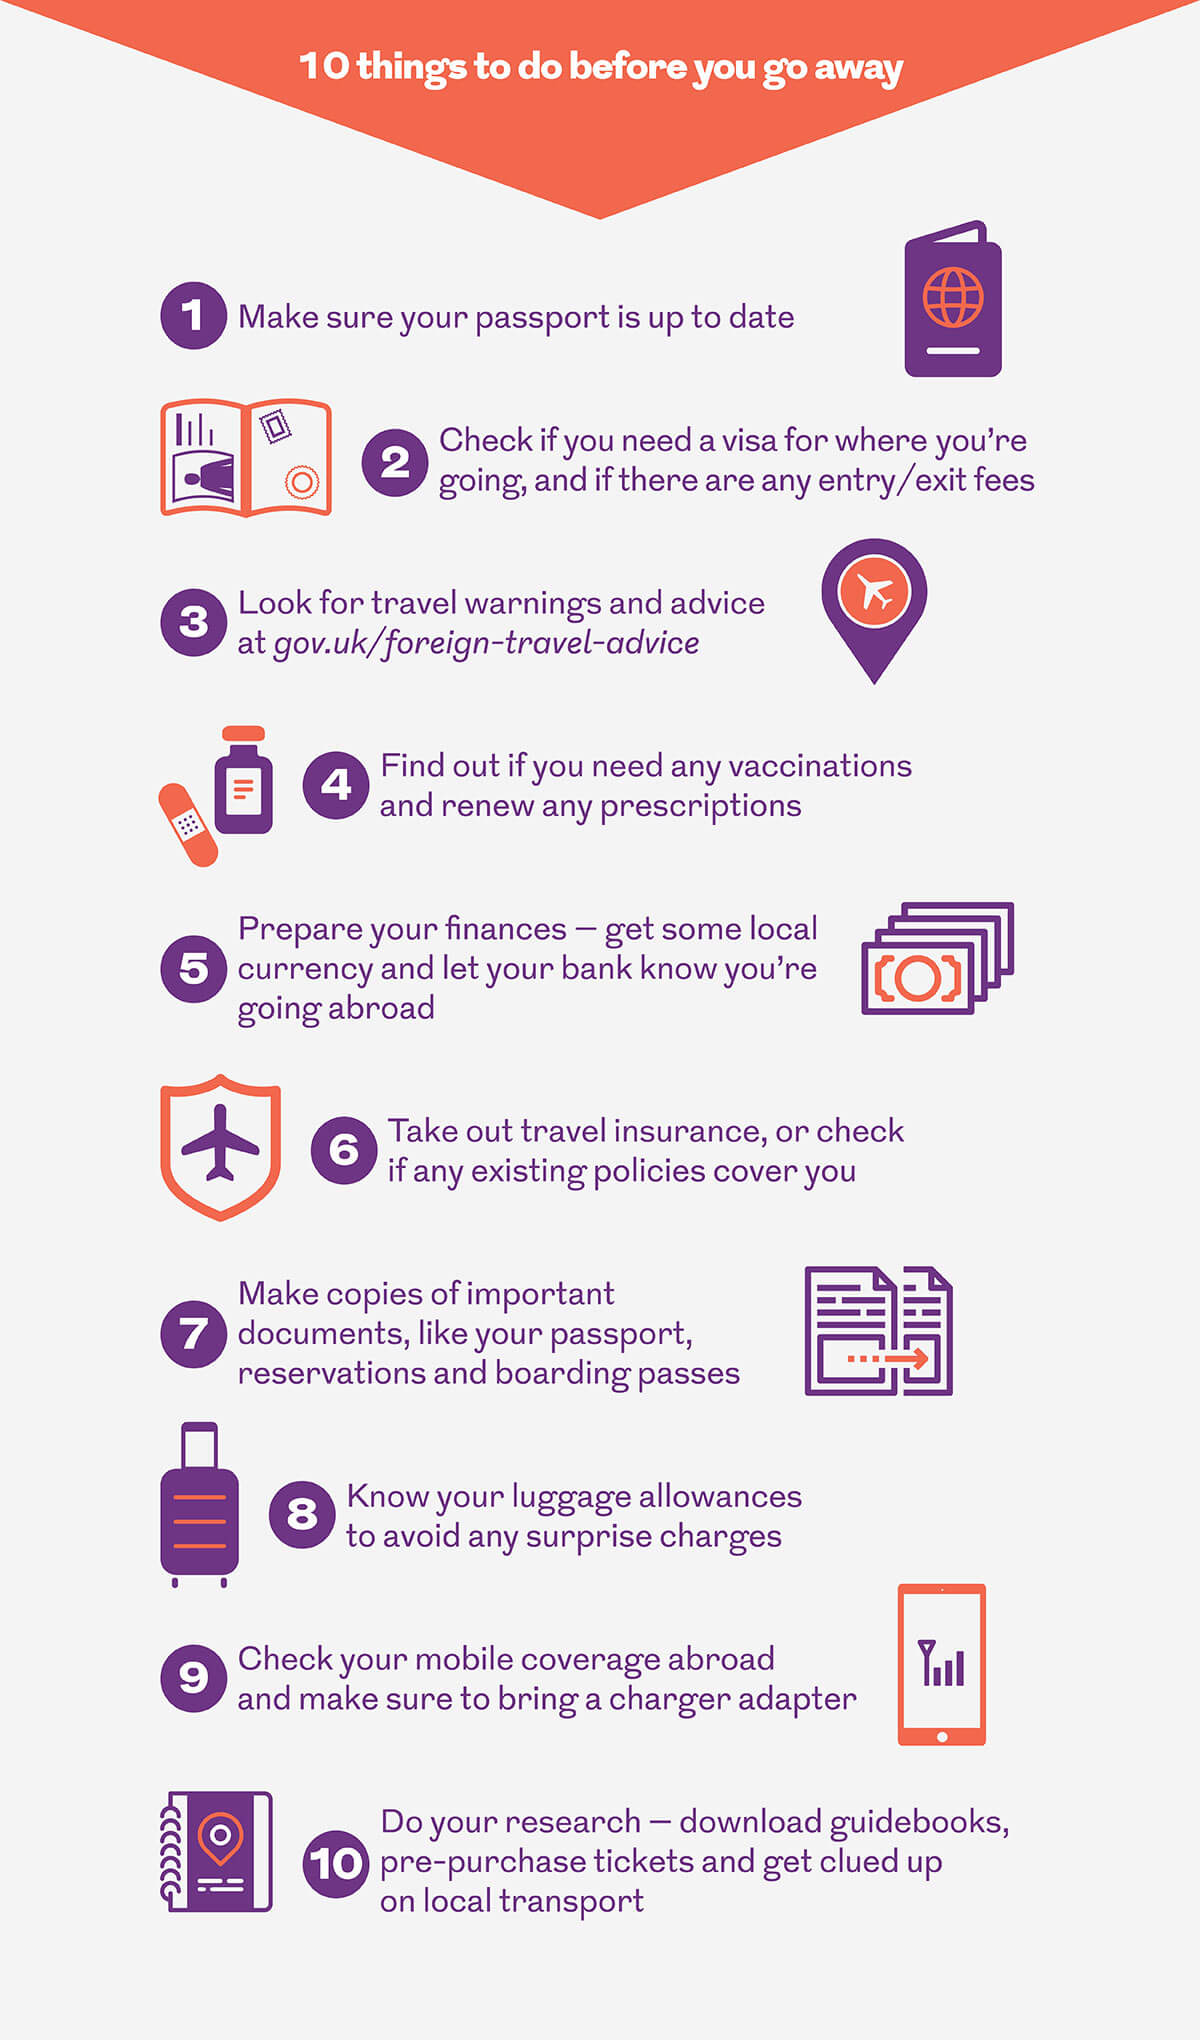 Infographic showing 10 things to do before you go away. This image is an infographic and has alternative text available if you are using a screen reader.